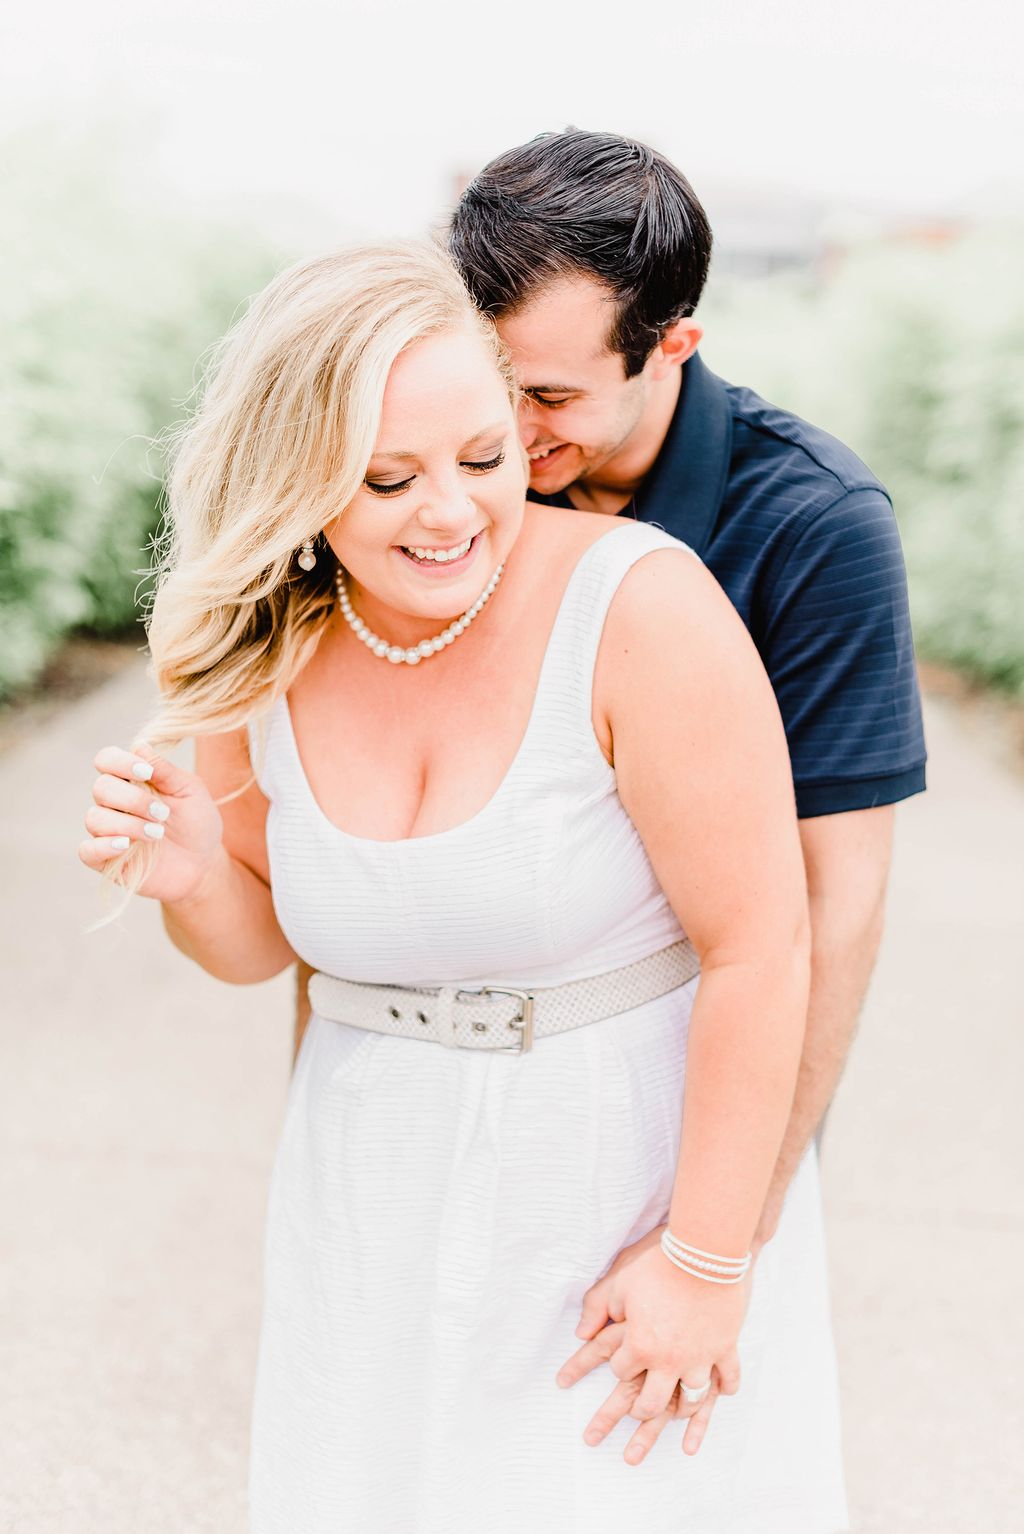 Heather and Vinny Engagement Session